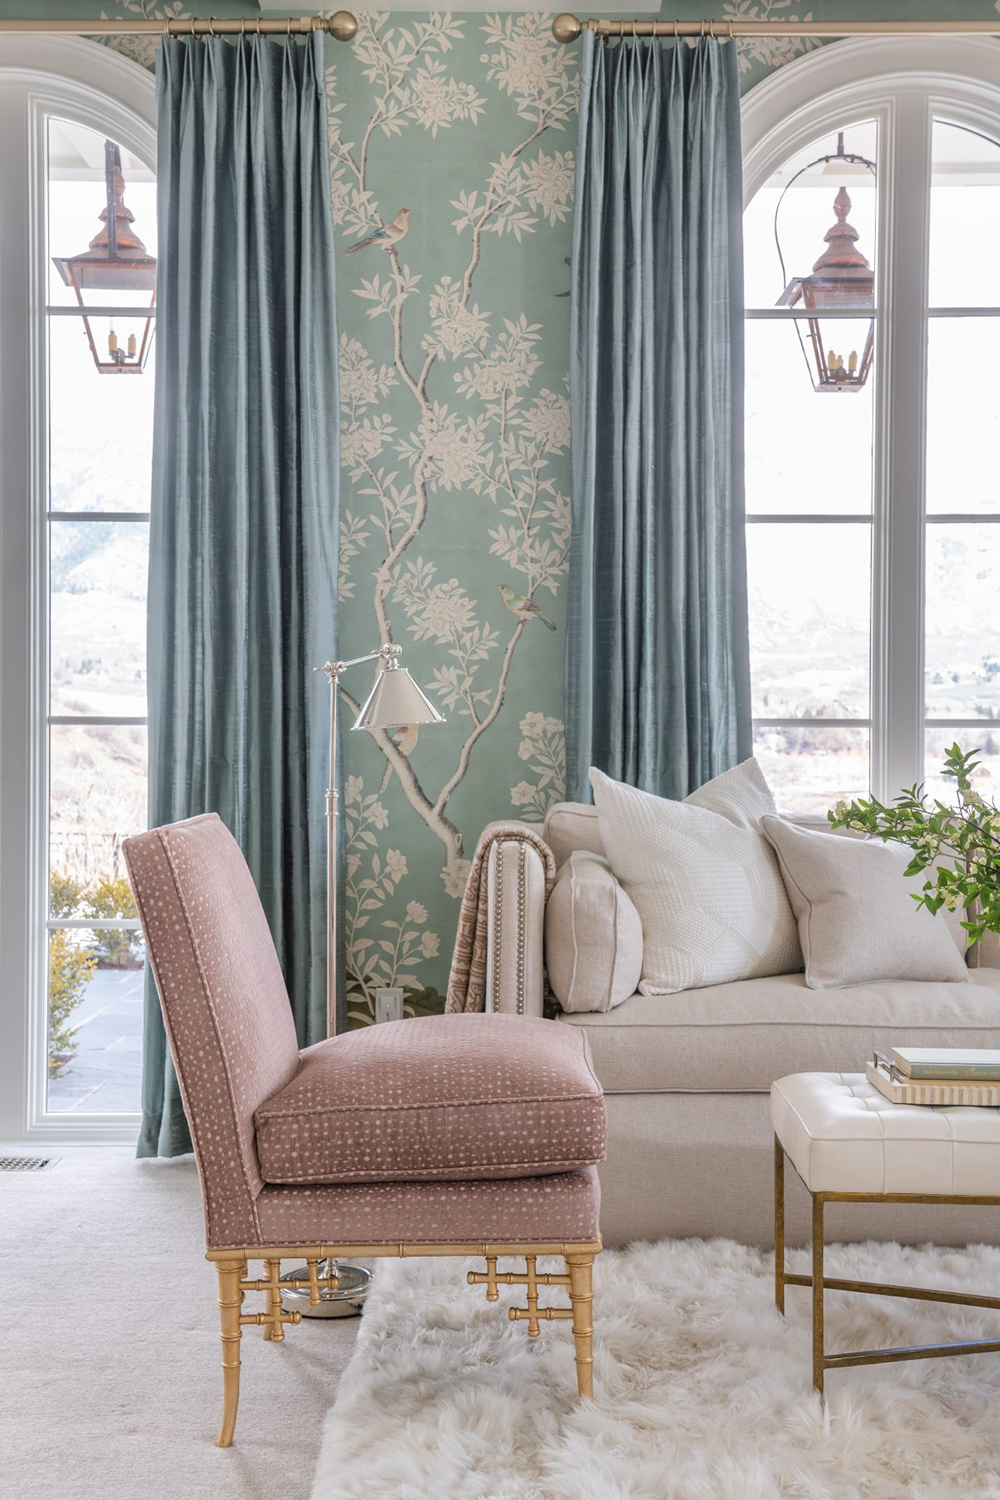 Roundup : Floral, Striped, & Toile Wallpaper